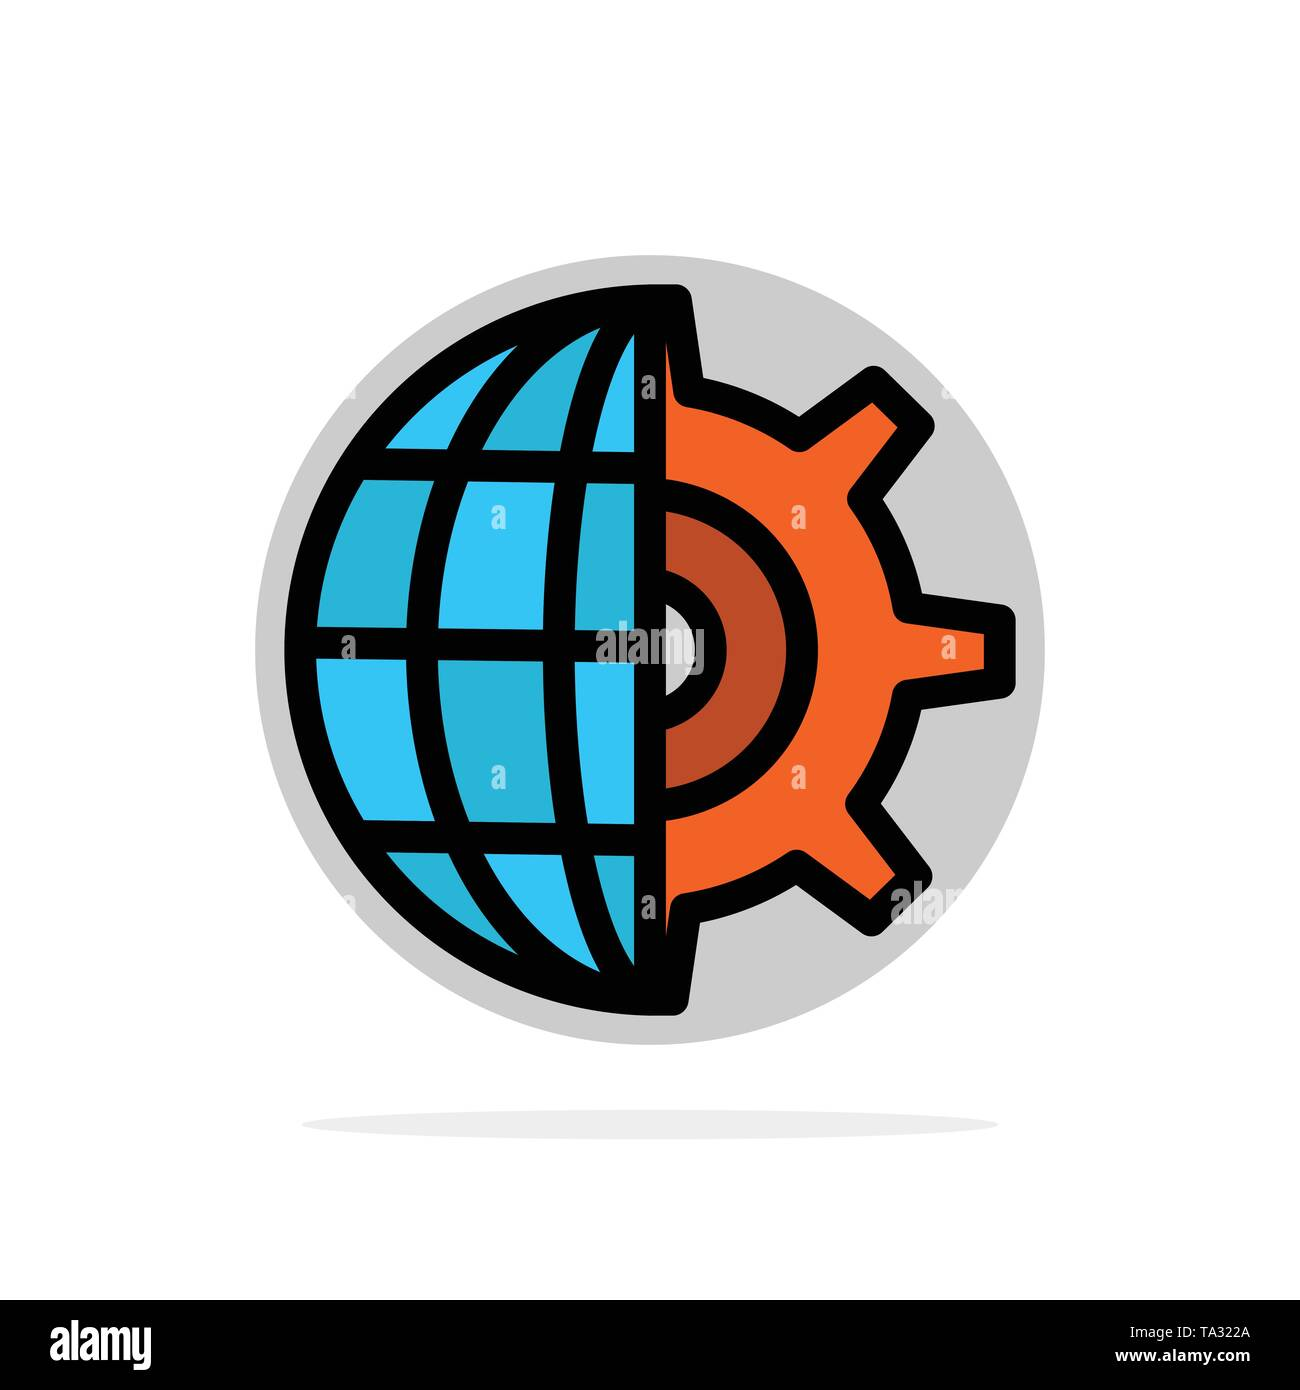 Gear, Globe, Setting, Business Abstract Circle Background Flat color Icon - Stock Image